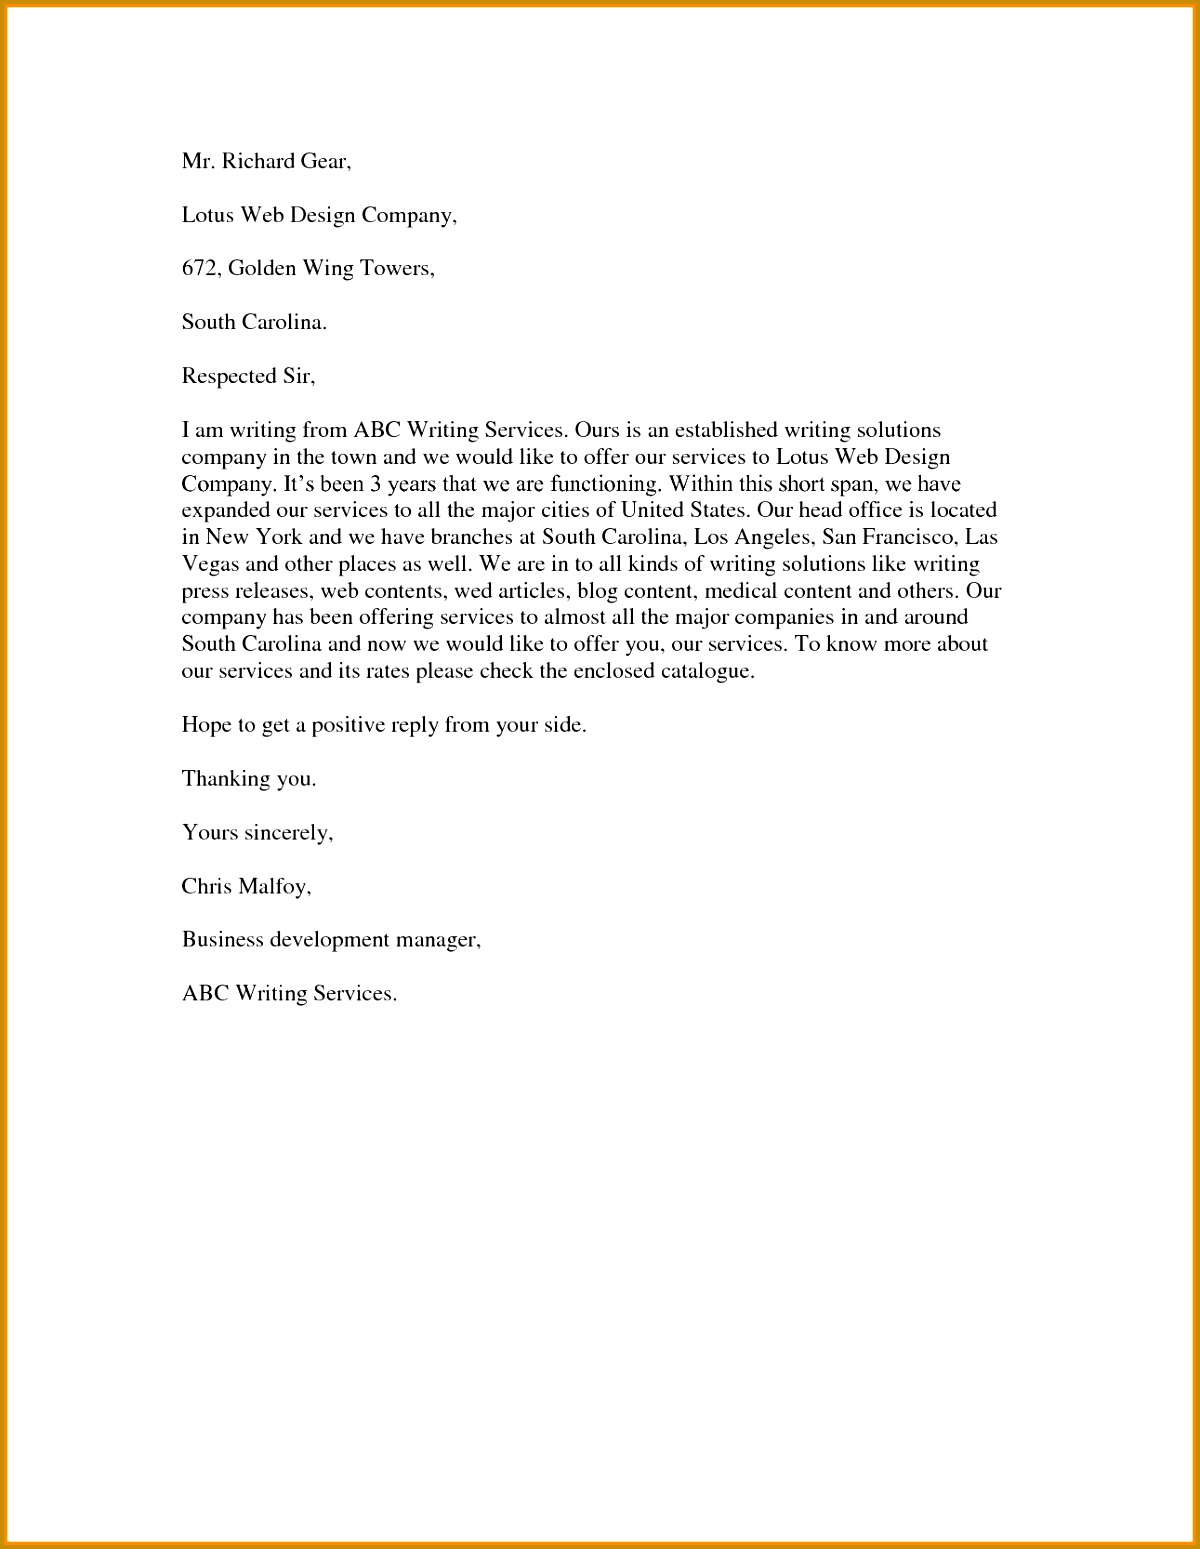 Cover letter format business proposal services professional cover letter format business proposal services how to write 12001549